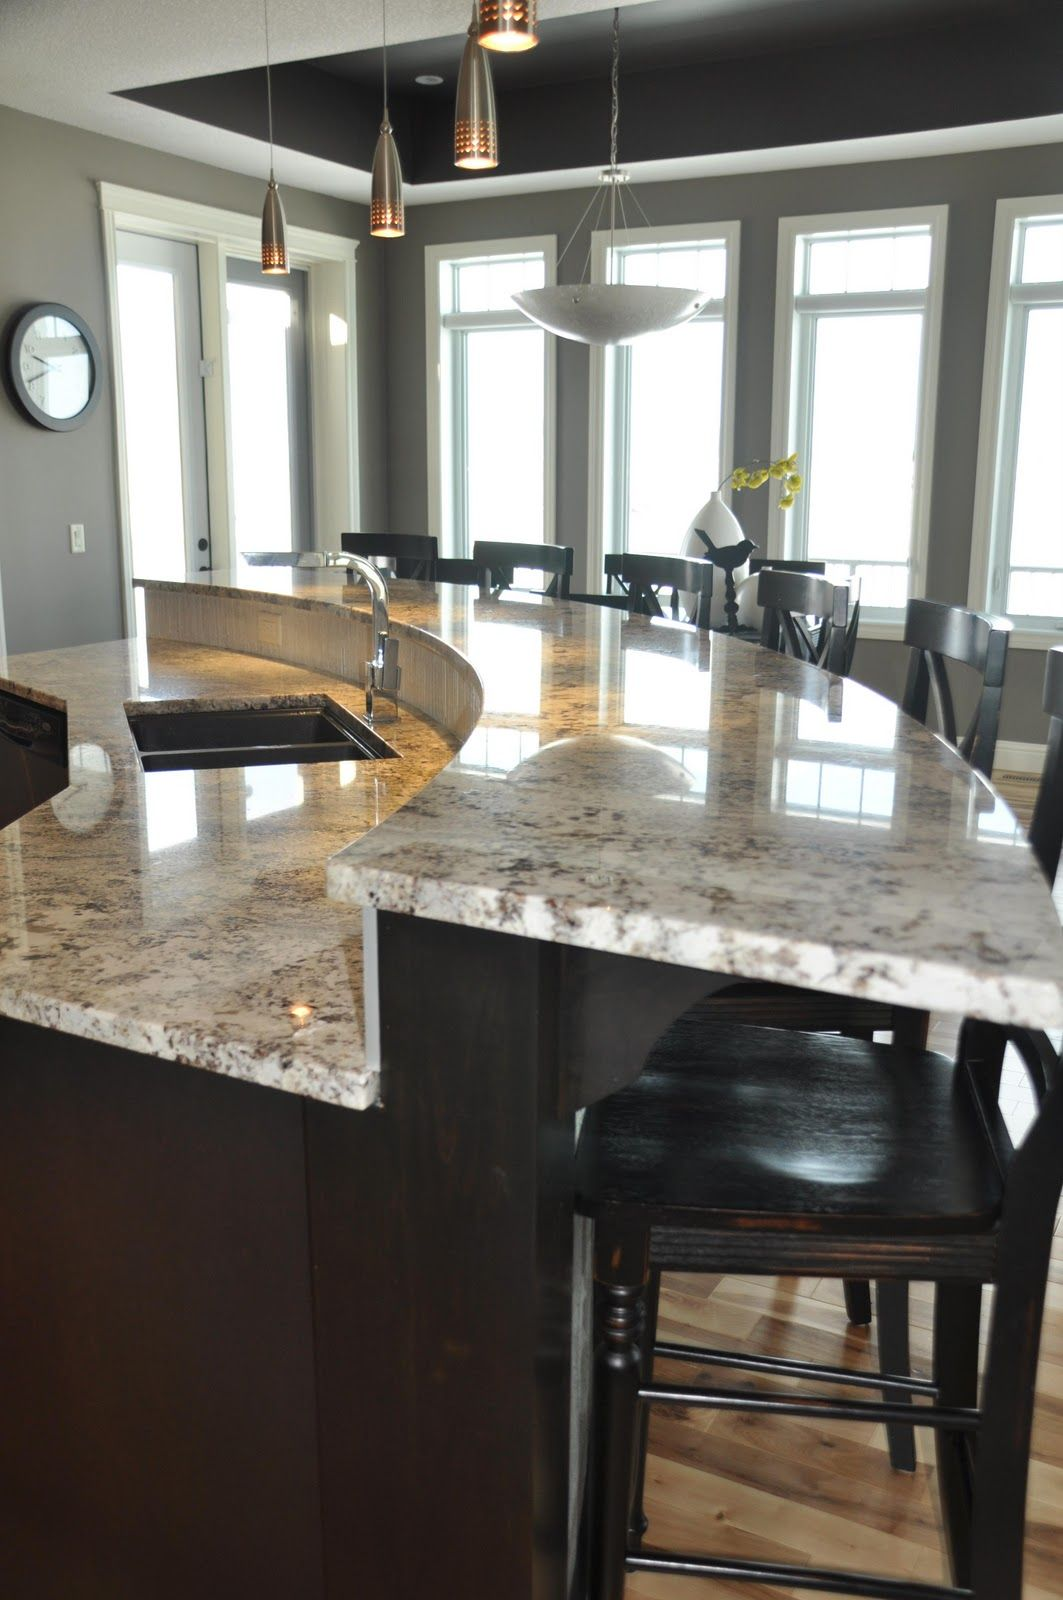 timber and lace my kitchen kitchen remodel small curved kitchen island on kitchen island ideas kitchen bar carts id=39983